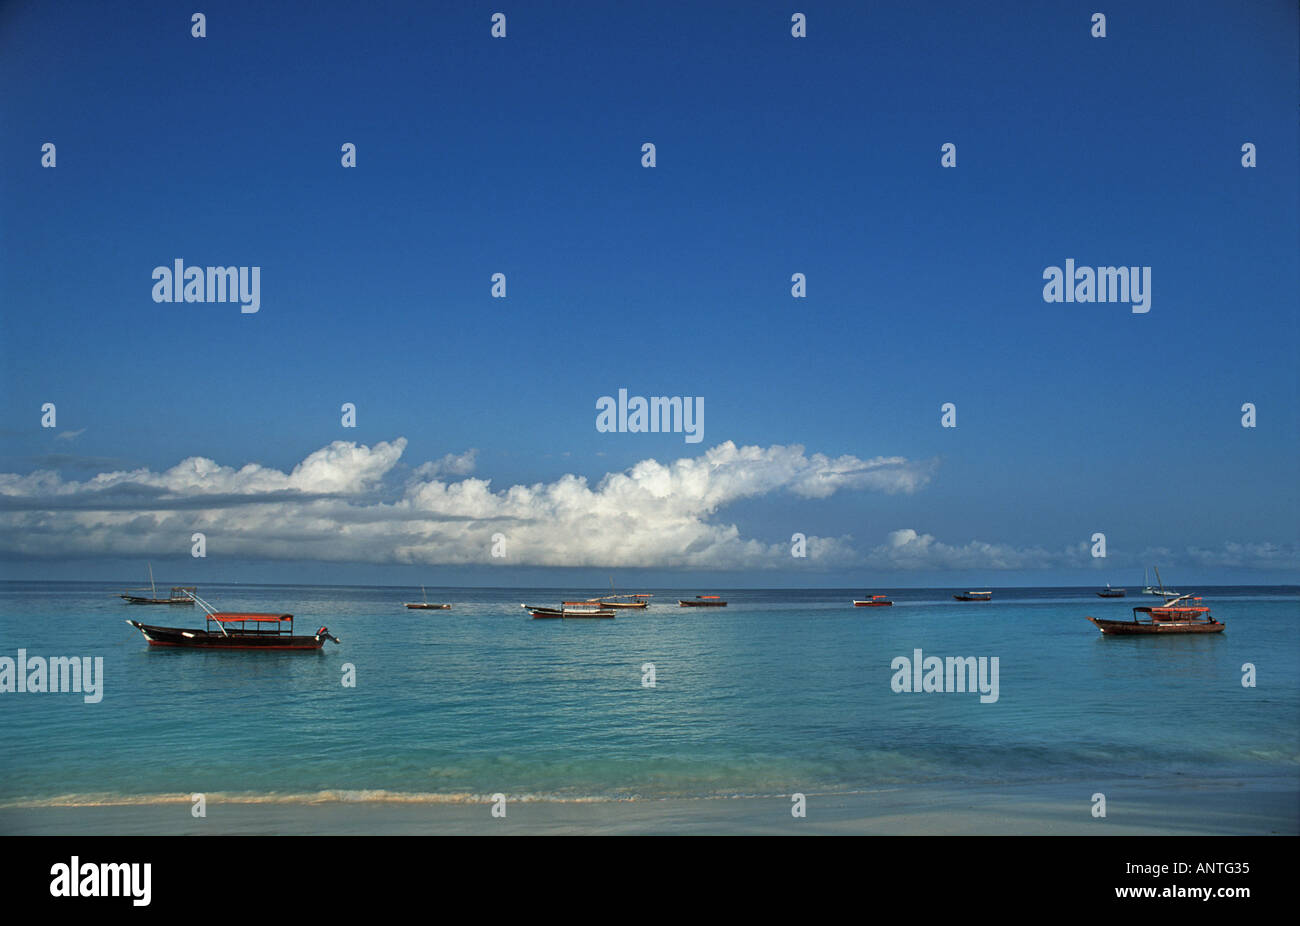 Boats moored off shore at low tide Nungwi Northern tip of Zanzibar Tanzania East Africa - Stock Image